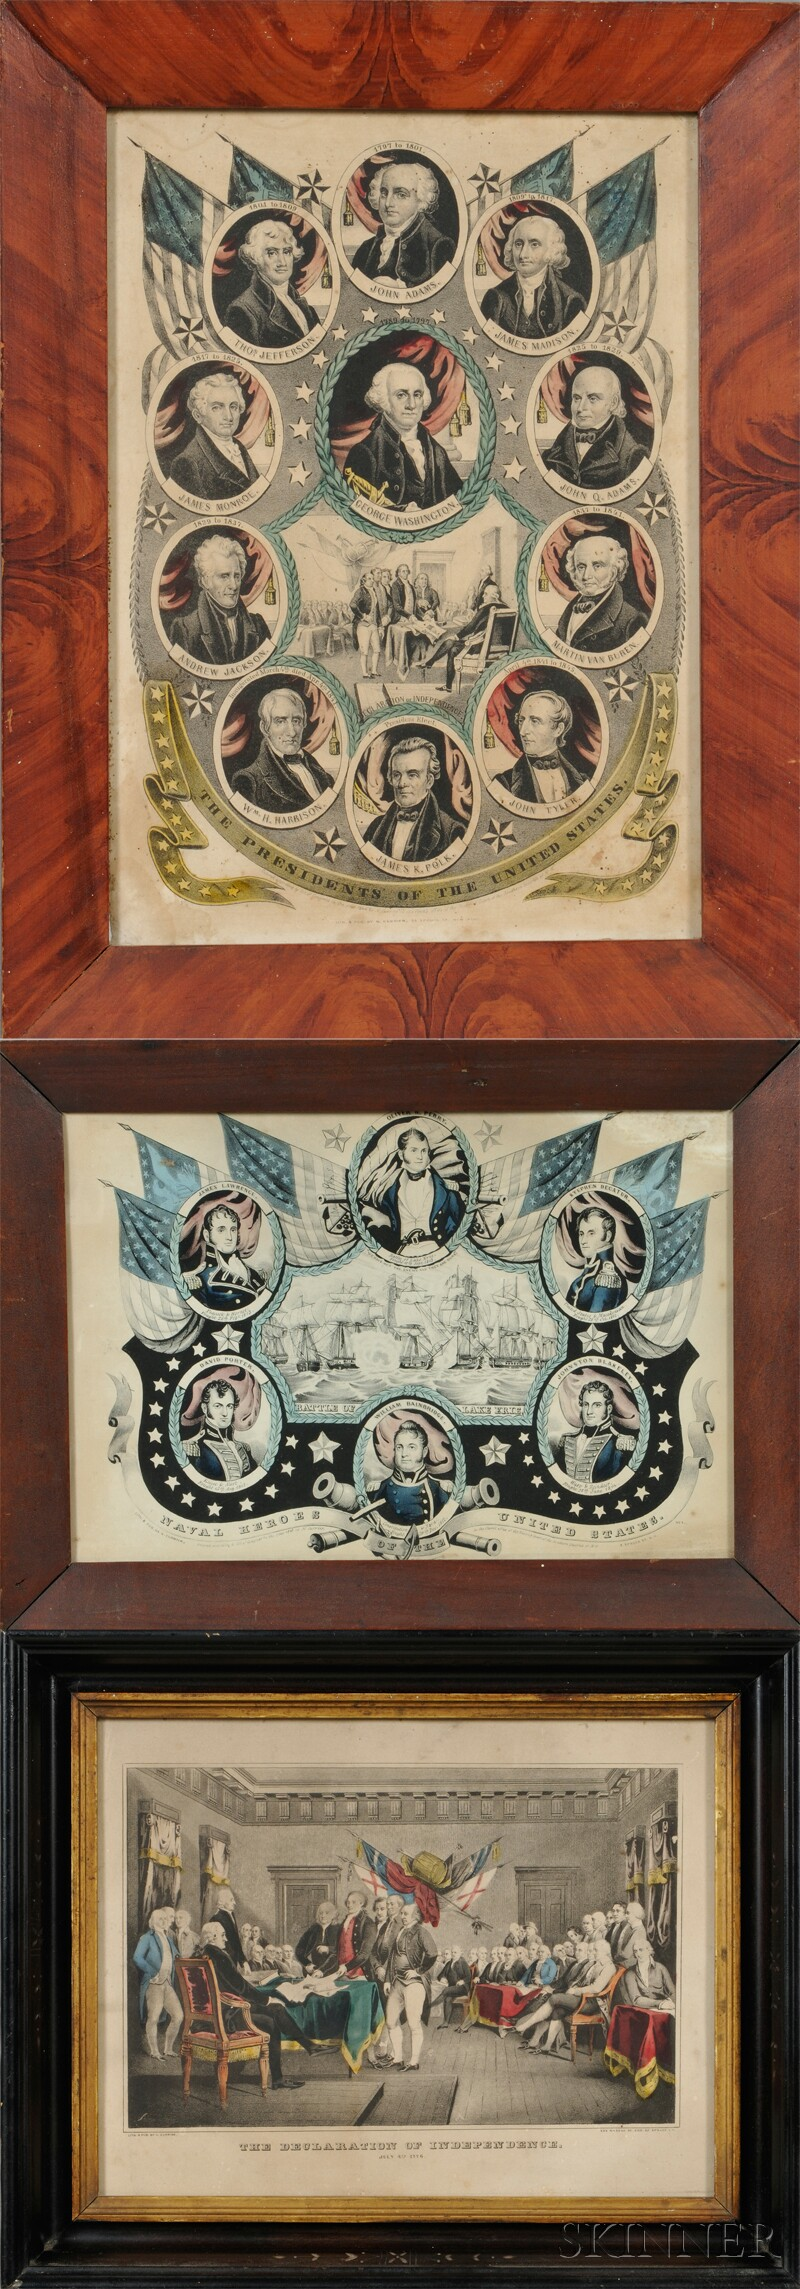 Nathaniel Currier, publisher (American, 1813-1888) Lot of Three Historical Prints: The Declaration of Independence.; The President of t